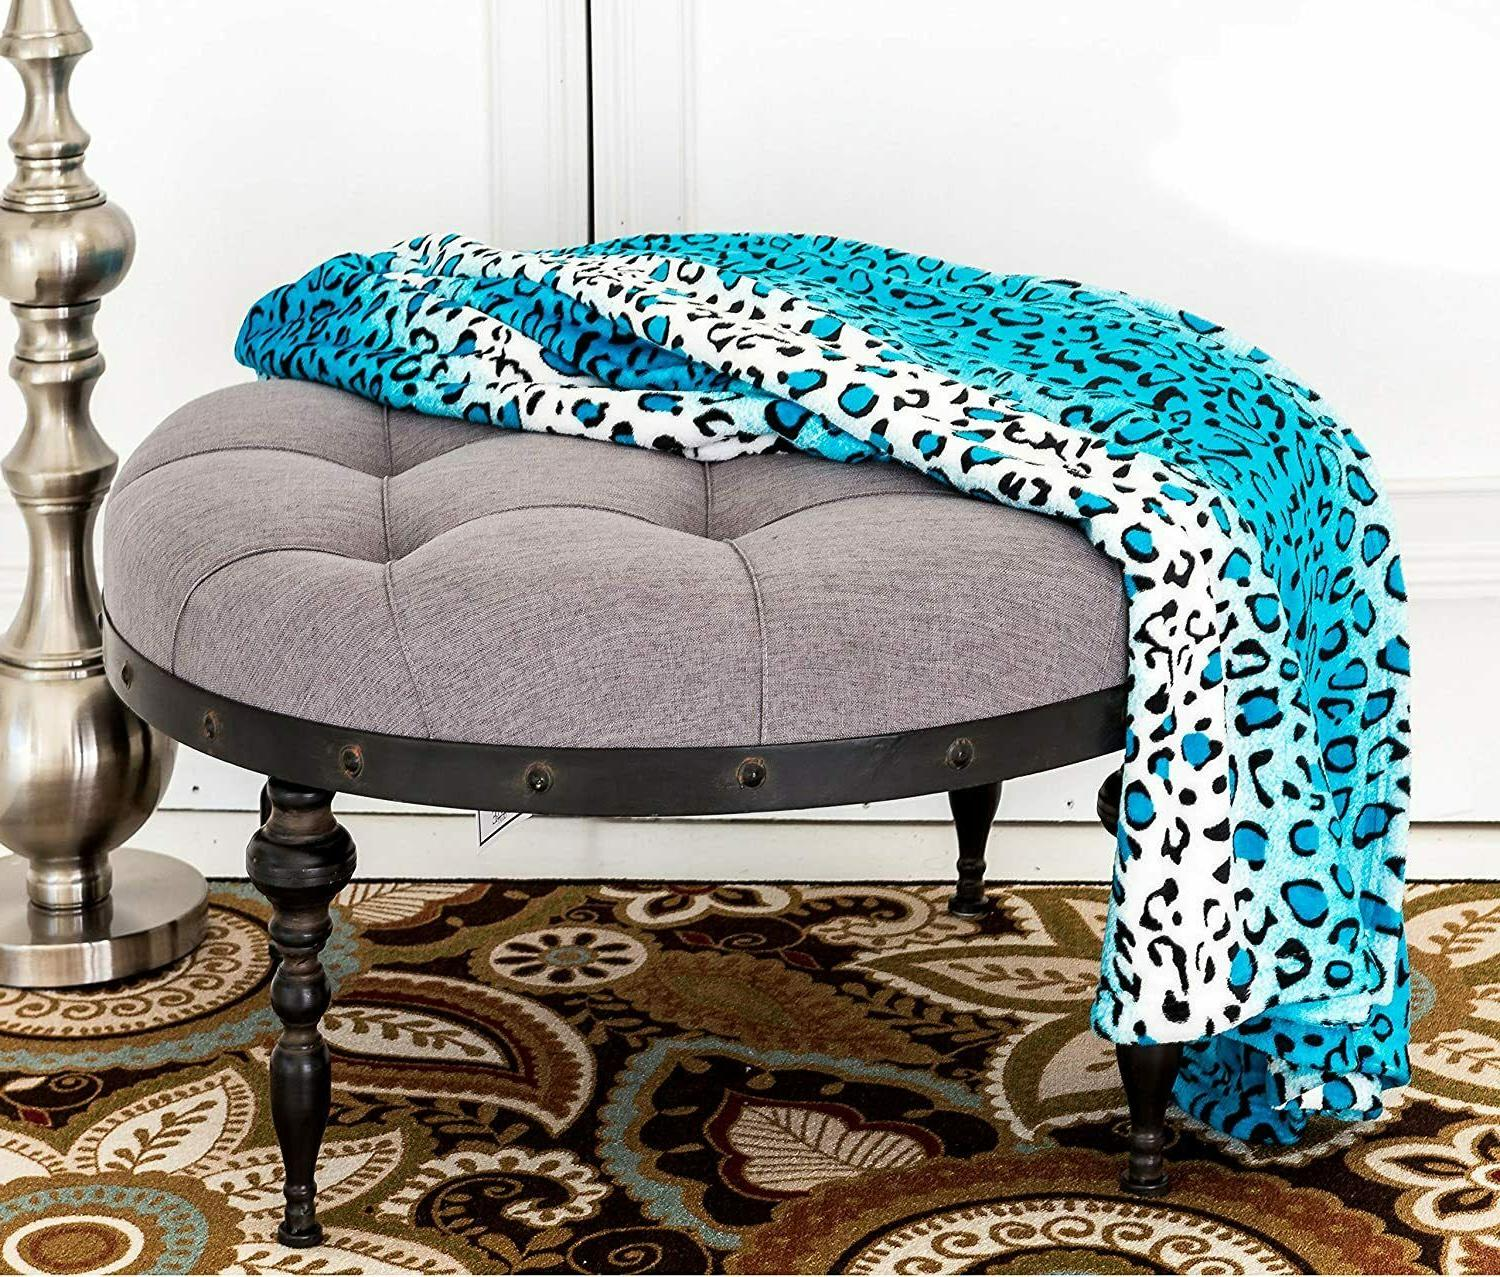 New Soft Warm Throw Turquoise Leopard Printed Flannel Fleece